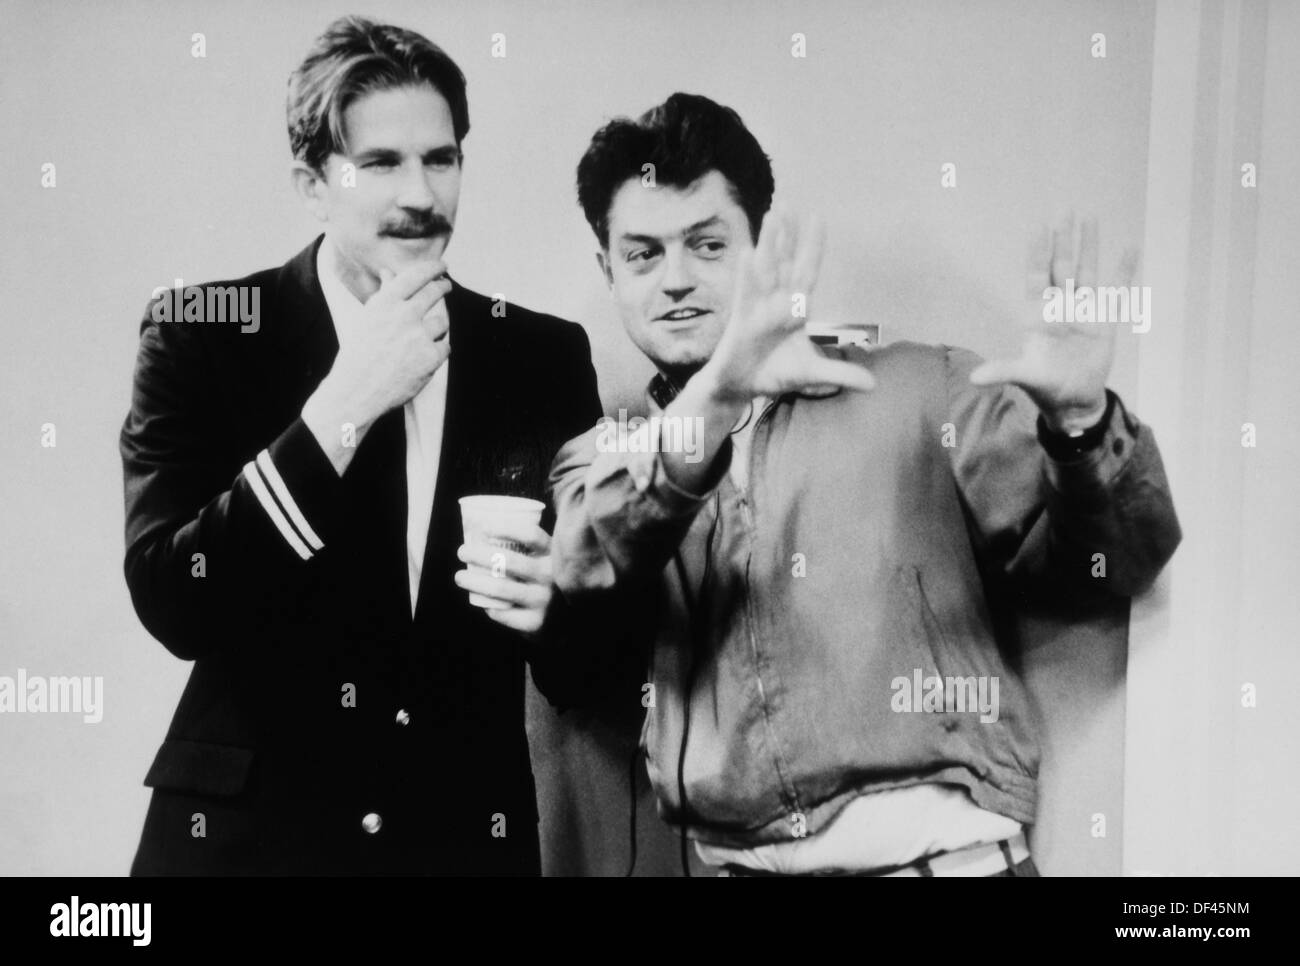 Jonathan Demme Directing Matthew Modine On-Set of the Film, 'Married to the Mob', 1988 - Stock Image